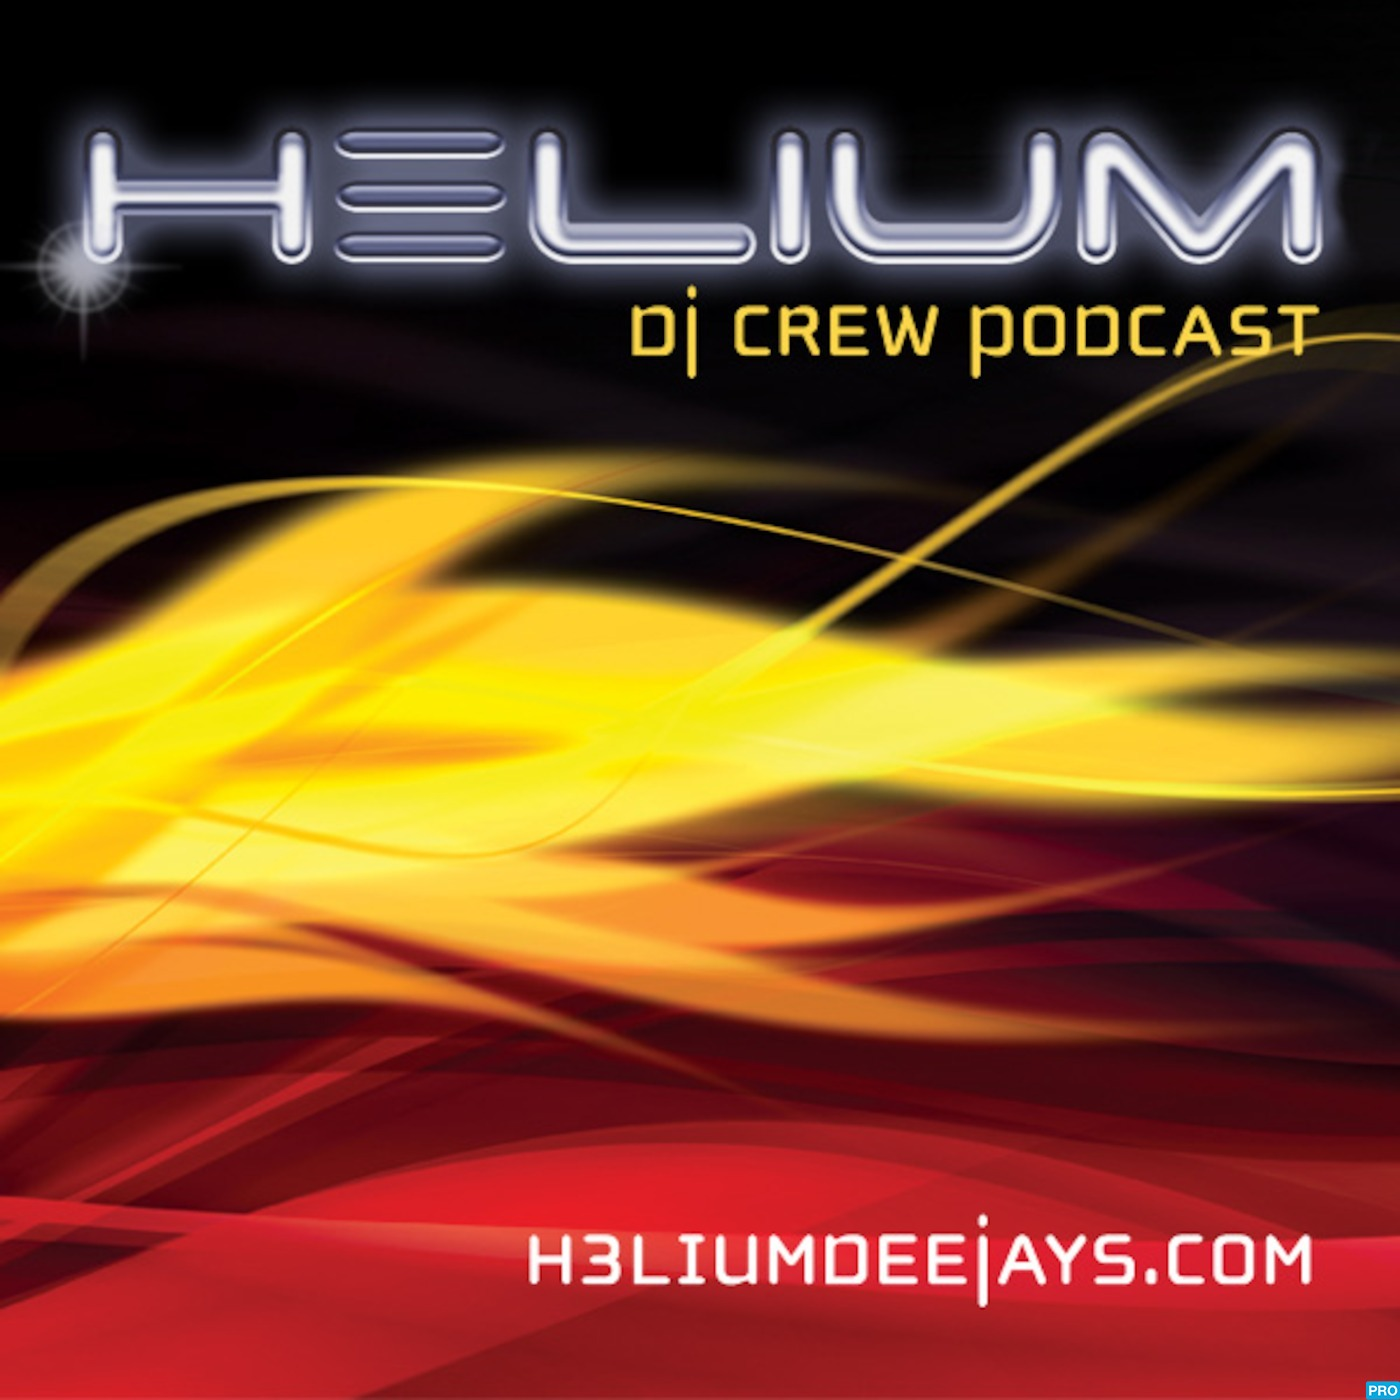 H3LIUM Crew Podcast